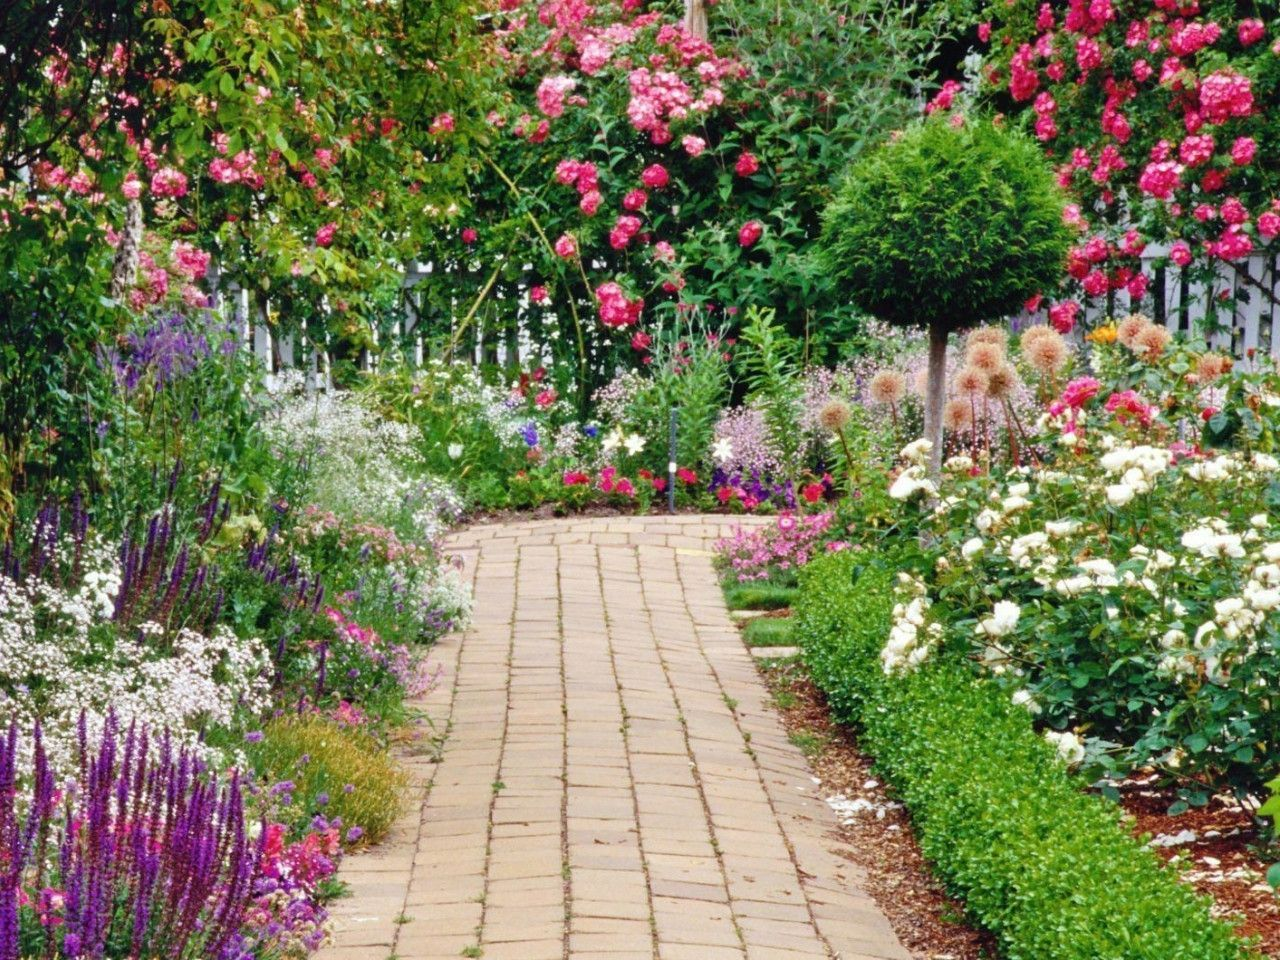 Flower Garden Wallpaper Background